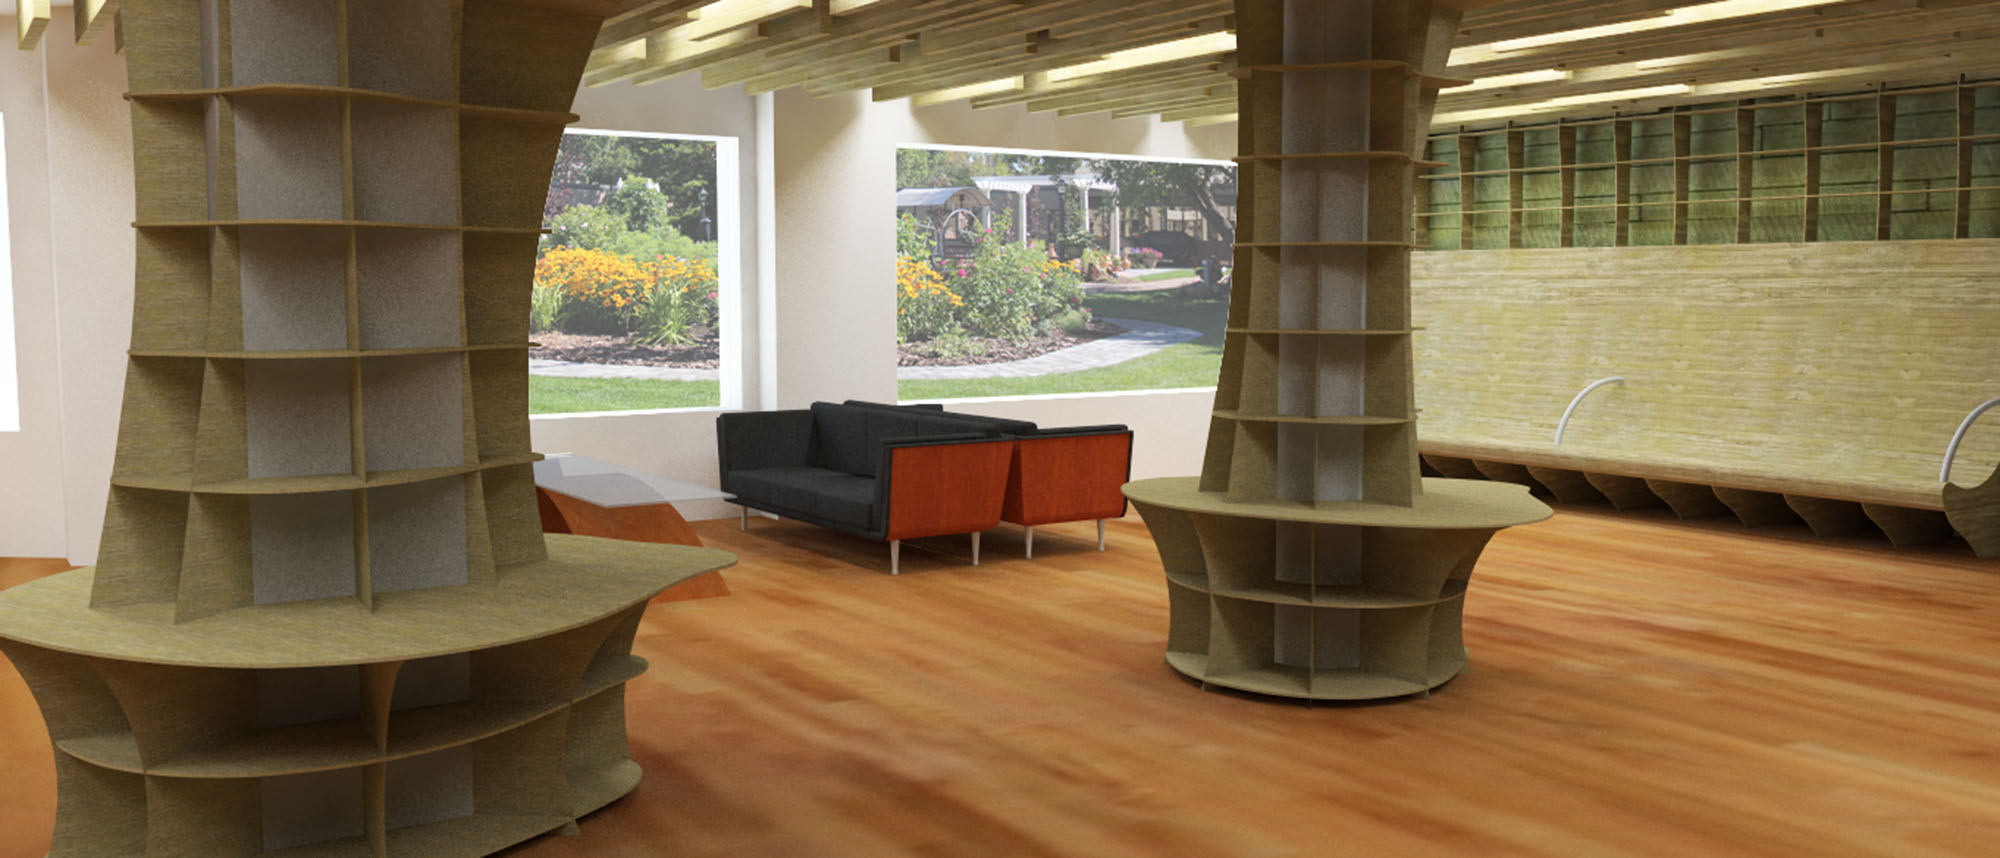 Wall-To-Ceiling_Lobby-Lounge_Day-time.jpg